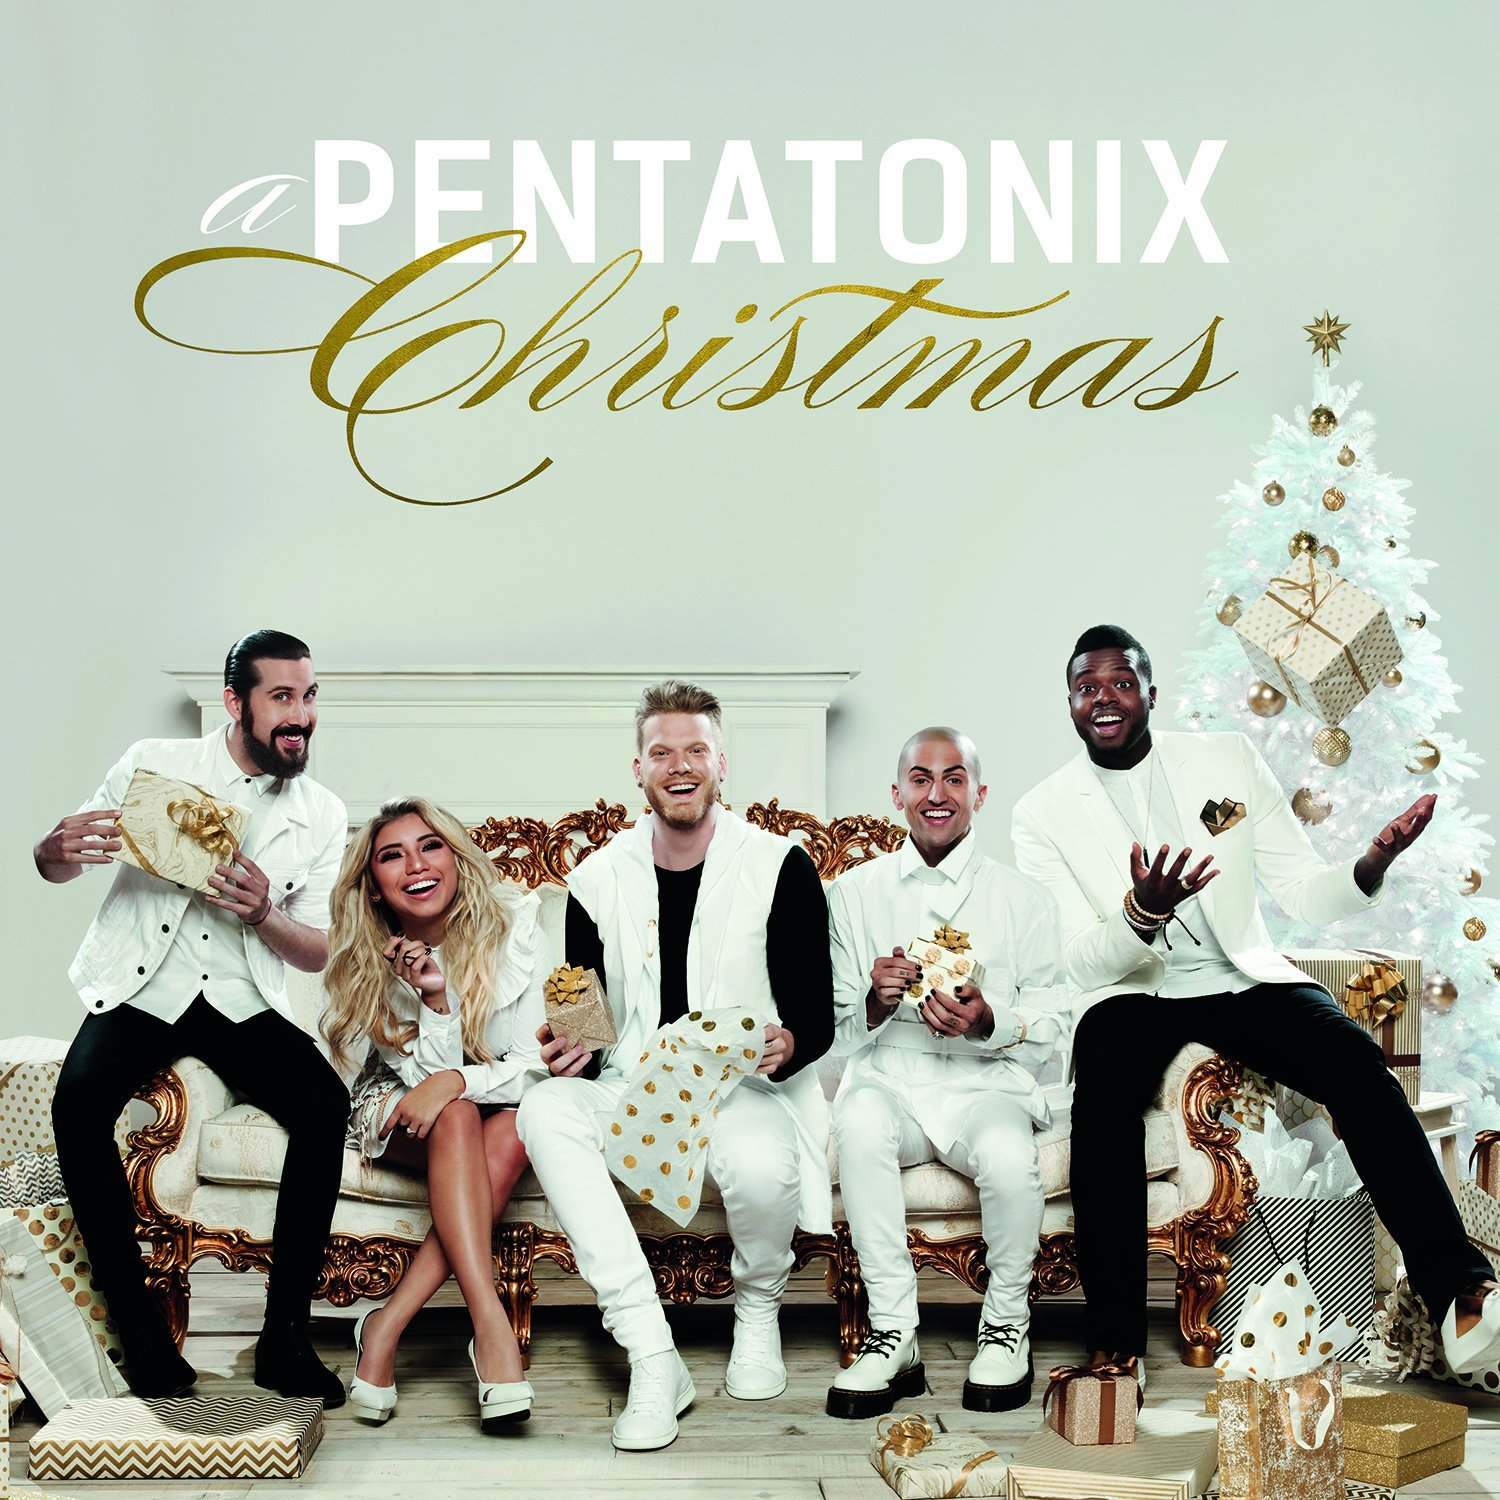 Billboard 200 Grooves: Pentatonix Takes 'Christmas' to No. 1